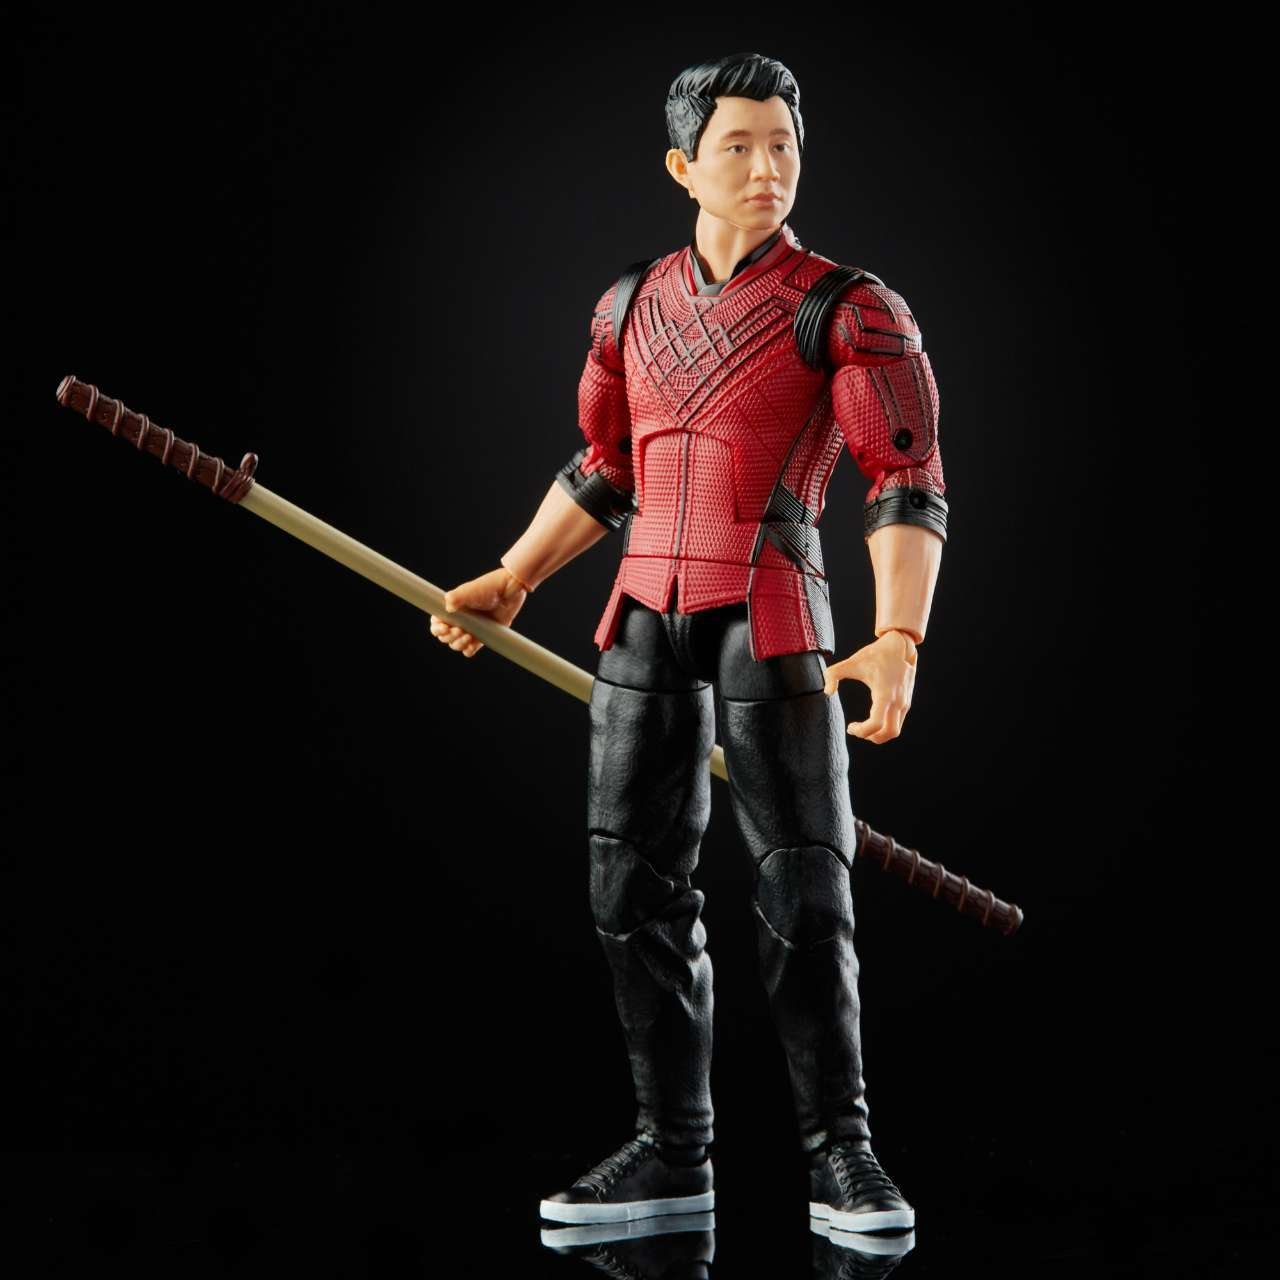 MARVEL LEGENDS SERIES 6-INCH SHANG-CHI AND THE LEGEND OF THE TEN RINGS - Shang-Chi oop1